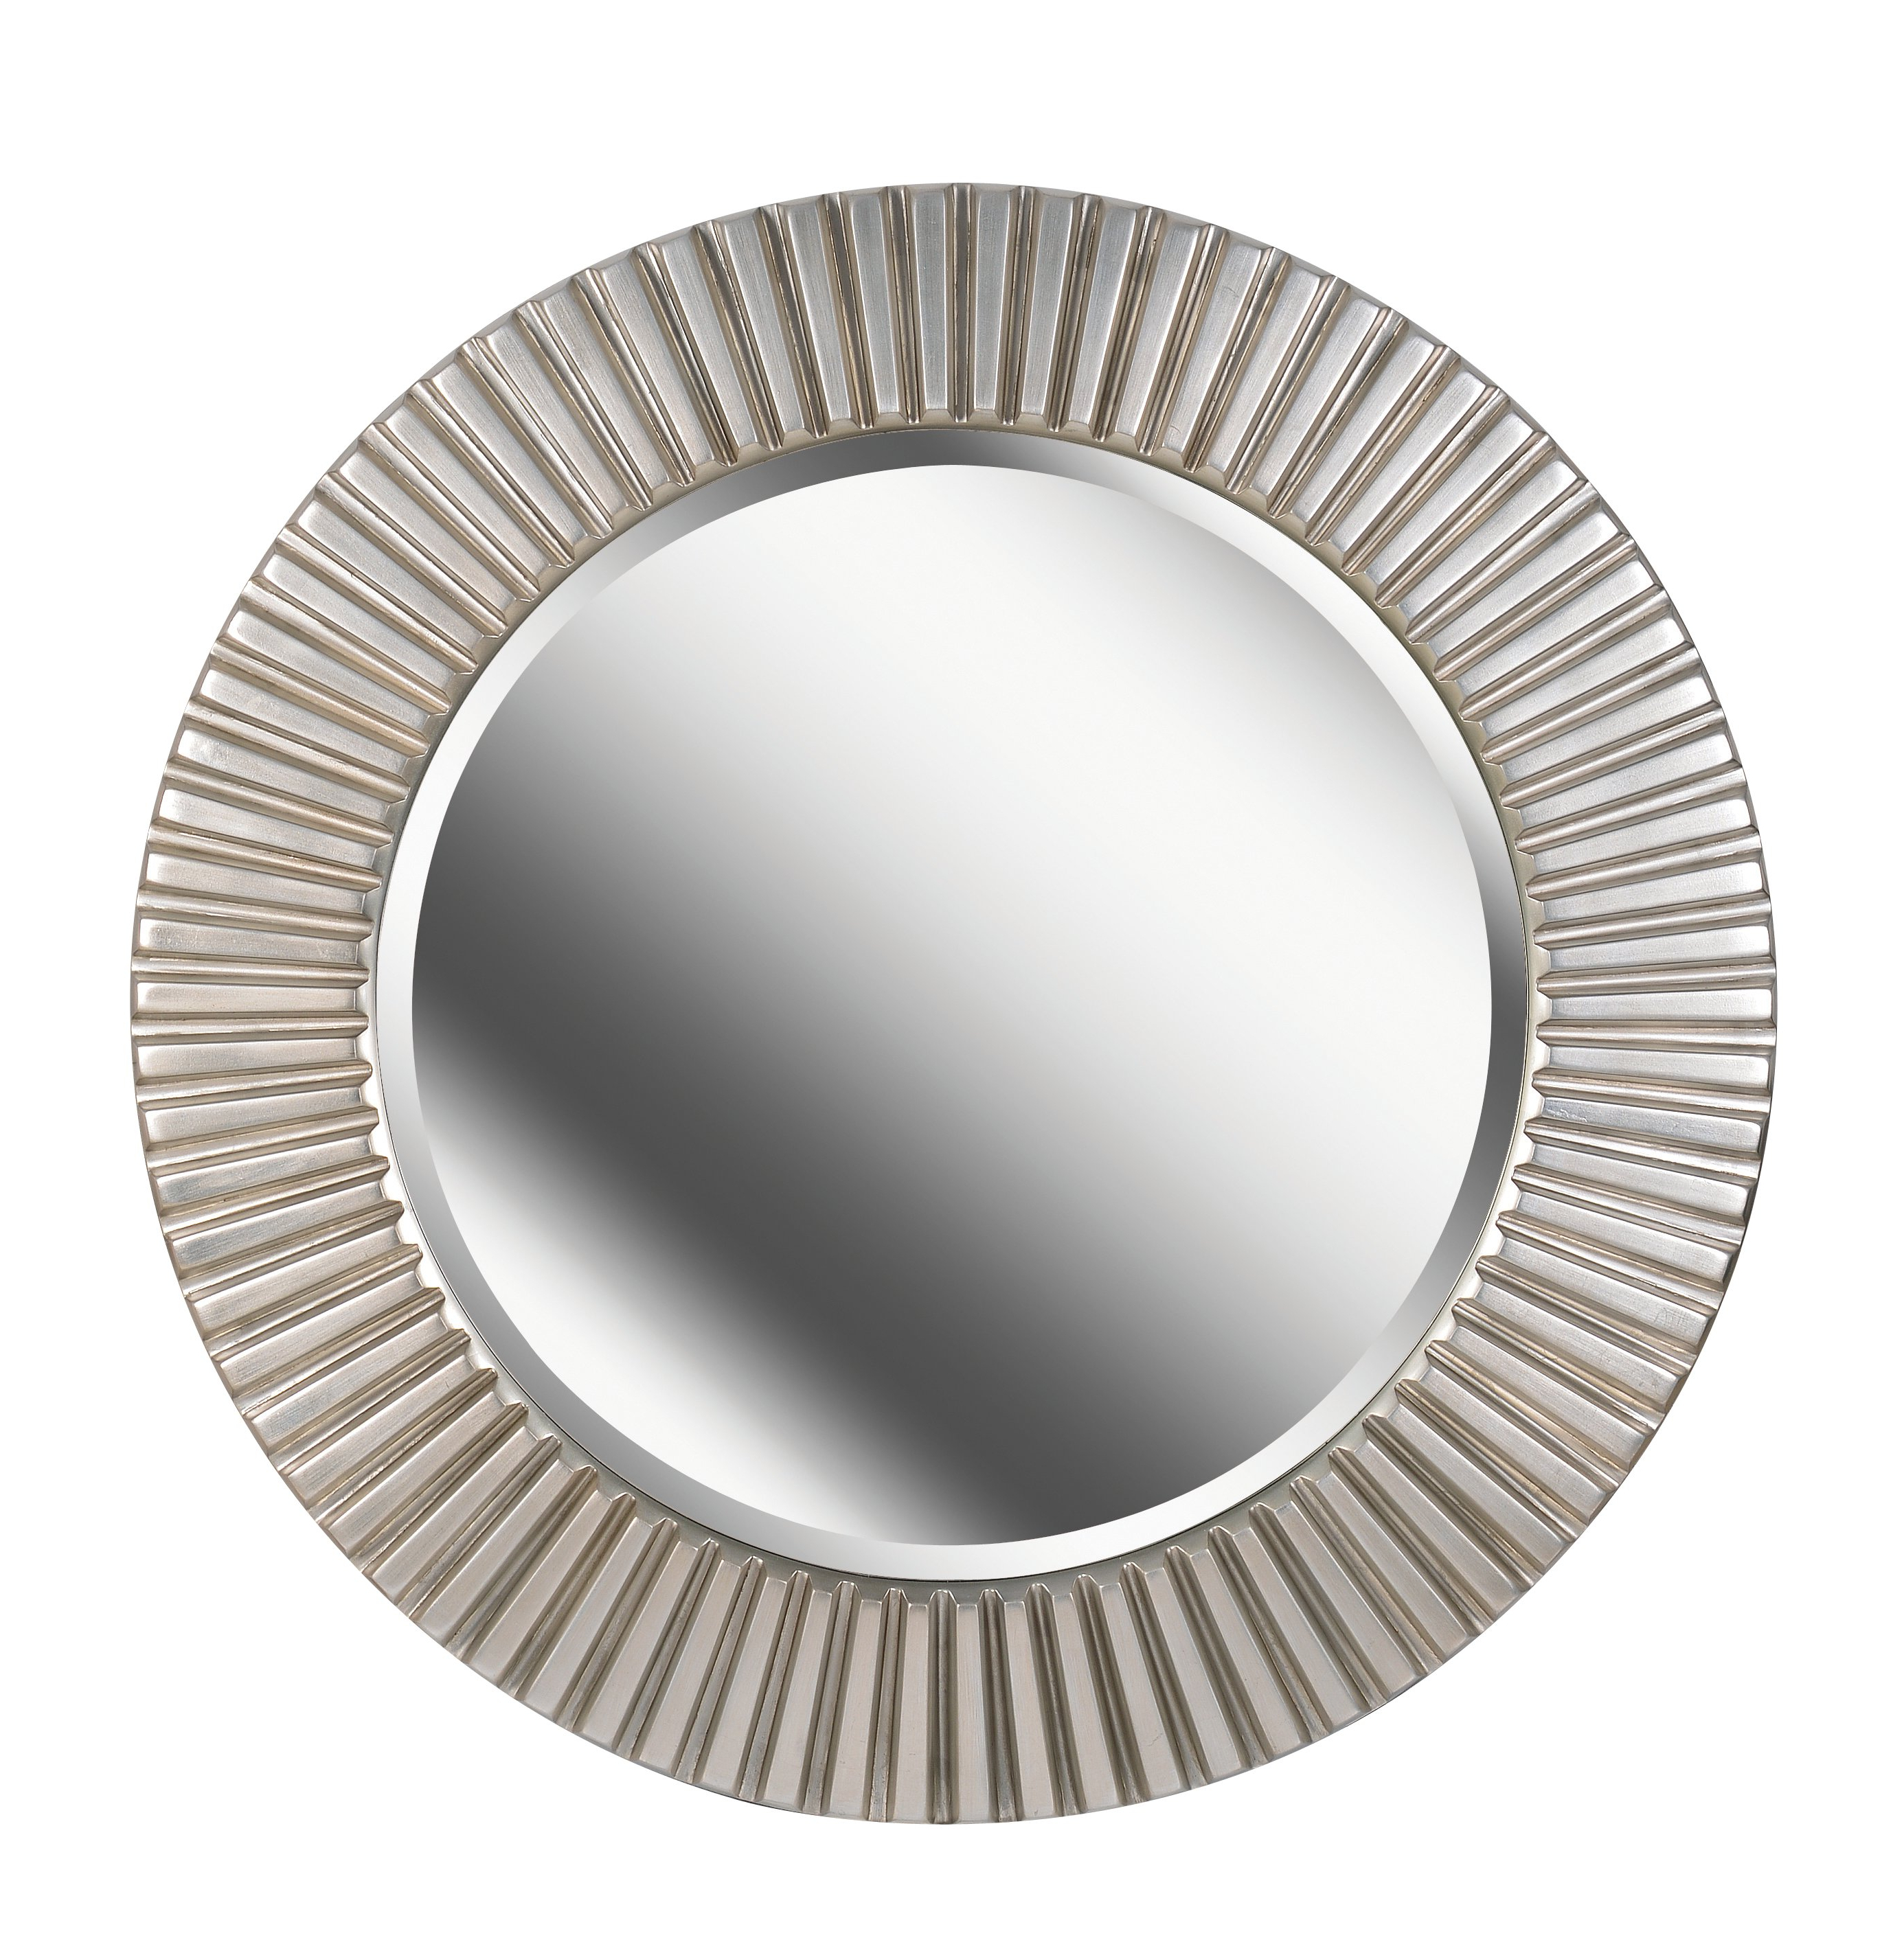 Popular Round Eclectic Accent Mirrors In Round Eclectic Accent Mirror (Gallery 3 of 20)